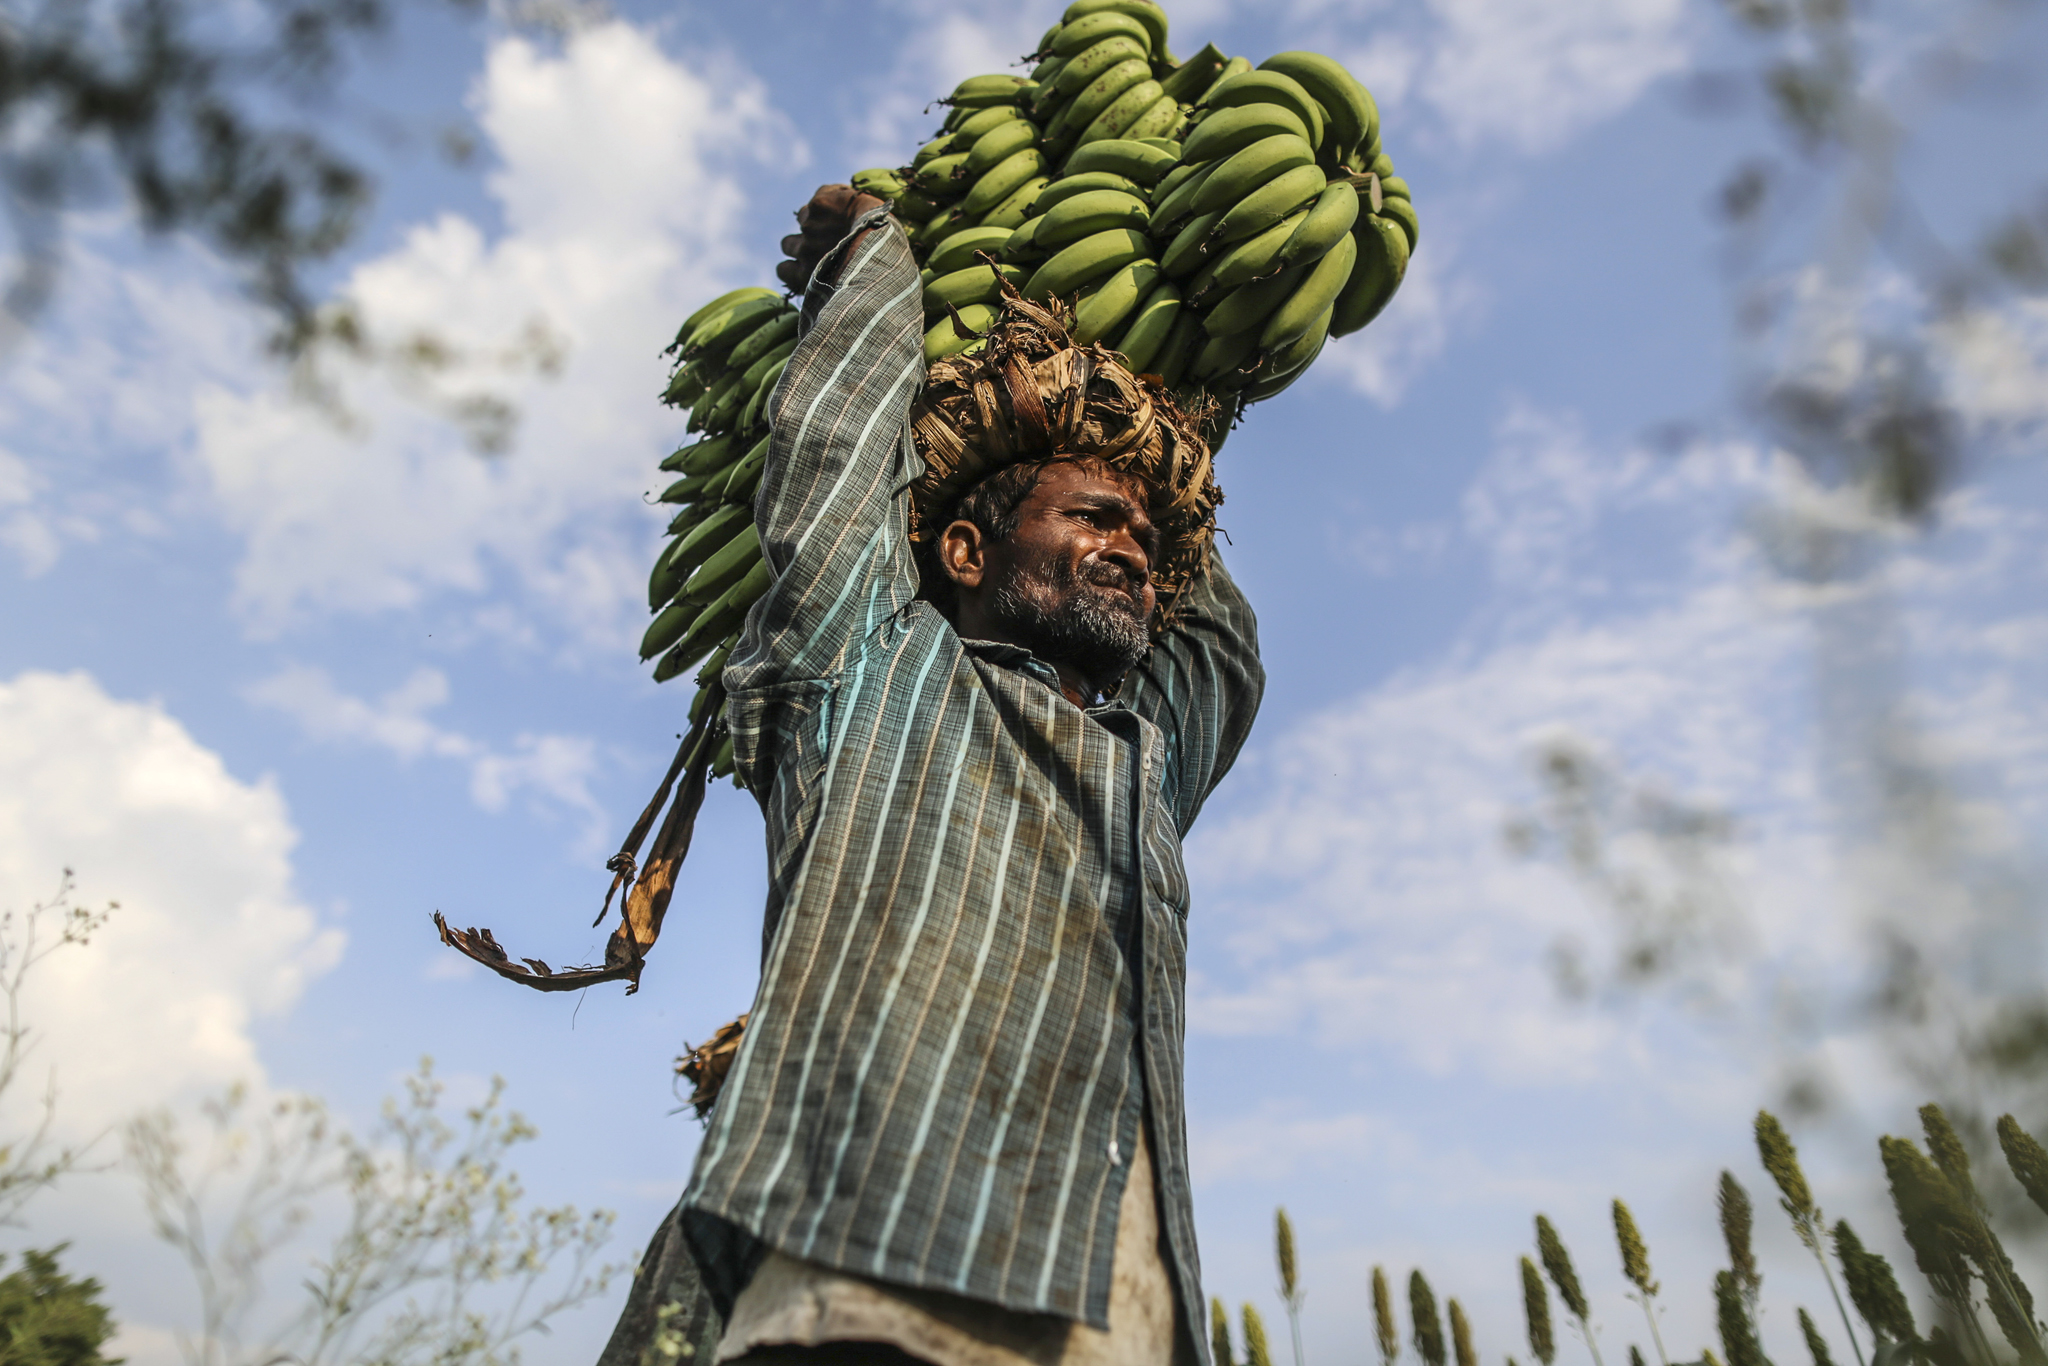 Banana Harvest As The Pick Up In Monsoon Rains Ease Price Concerns...A day laborer carries banana stems on his head during a harvest in a field in Bhusawal, Maharashtra, India, on Saturday, Oct. 4, 2014. More than 75 percent of India got normal monsoon rain this year, the India Meteorological Department estimates. About 833 million people out of Indiaís 1.2 billion population depend on agriculture for their livelihood and the sector provides 14 percent of the nationís gross domestic product. Photographer: Dhiraj Singh/Bloomberg